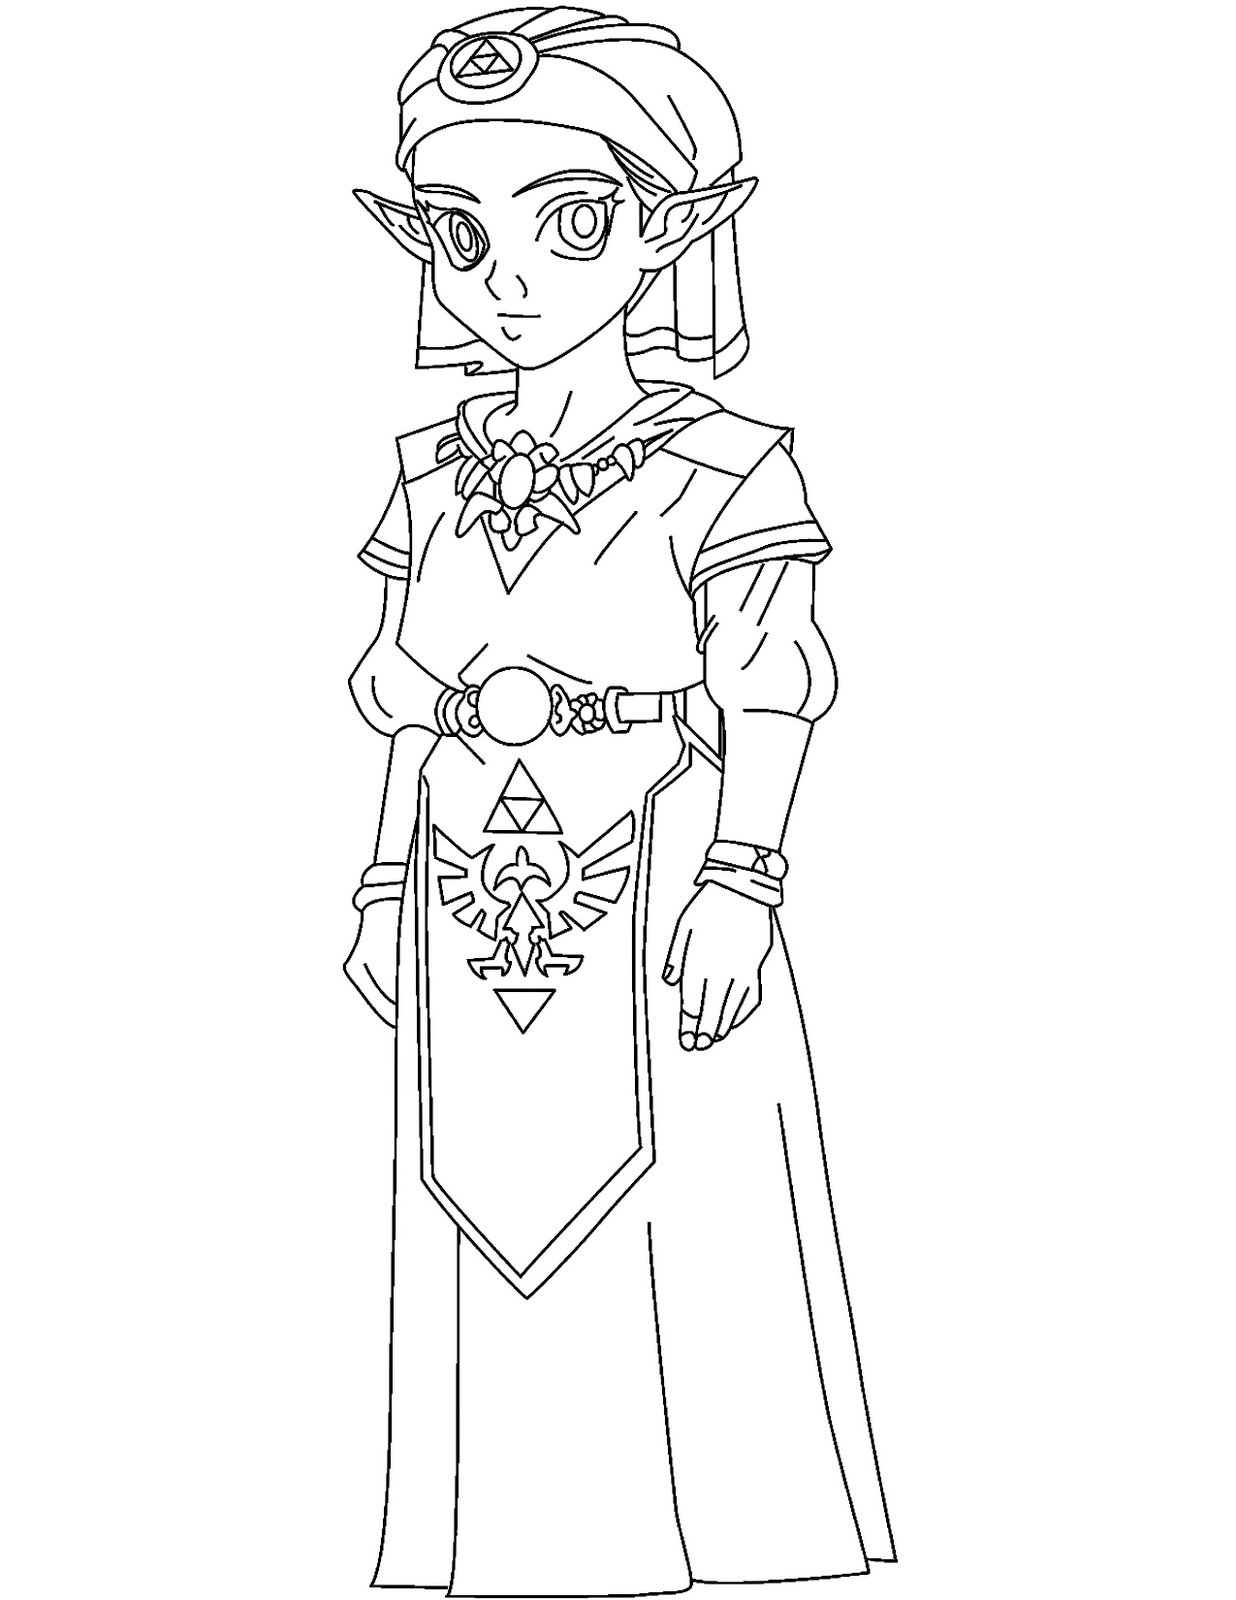 Ocarina Of Time Coloring Pages at GetDrawings | Free download